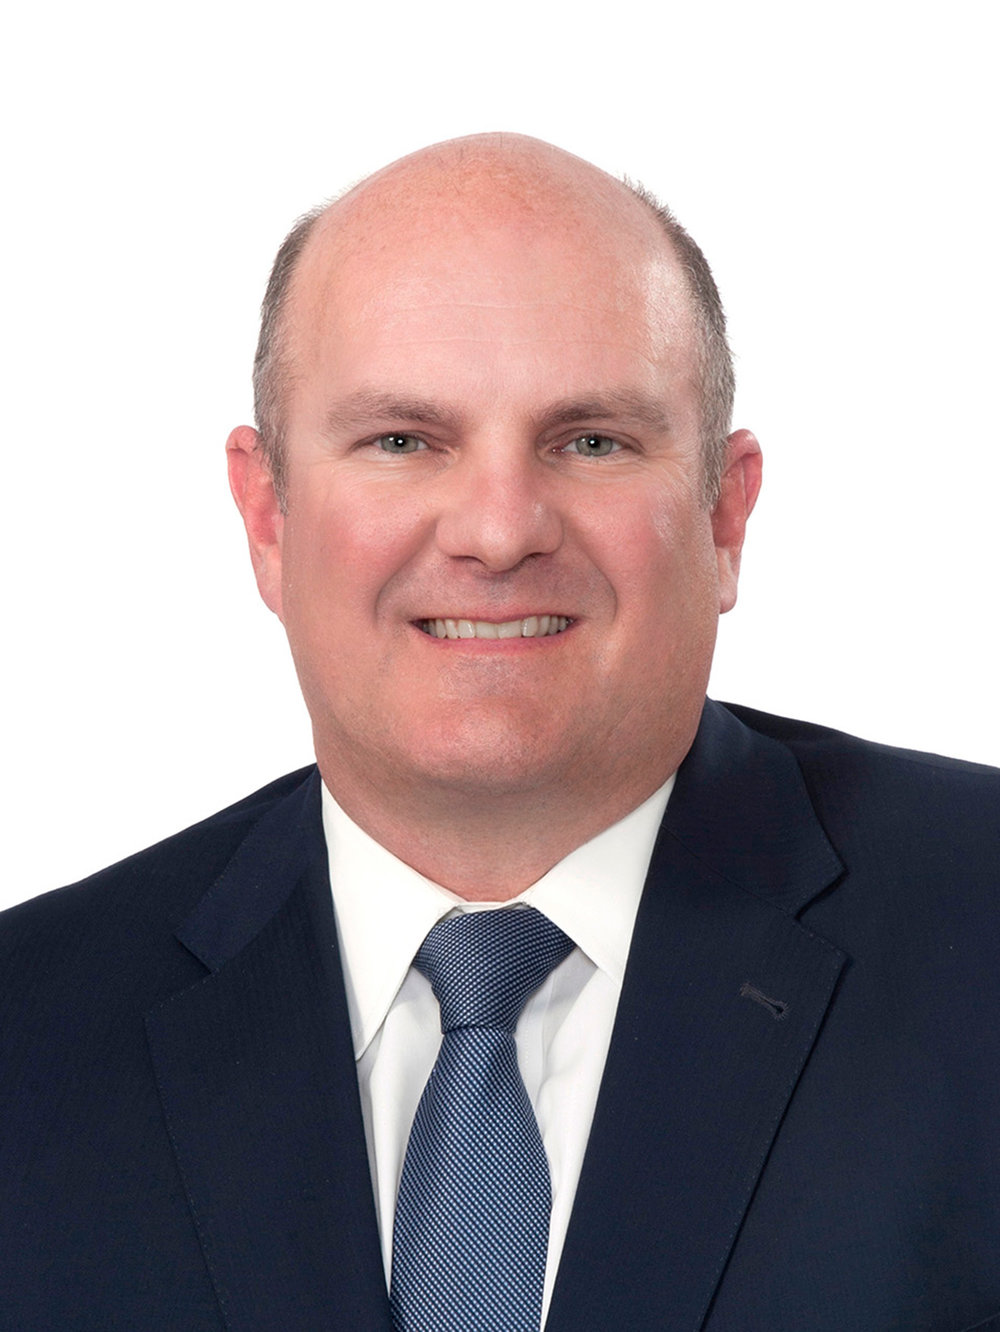 Craig A. Hill, CFP®, Senior Vice President of Day Hagan Asset Management in Sarasota, FL.